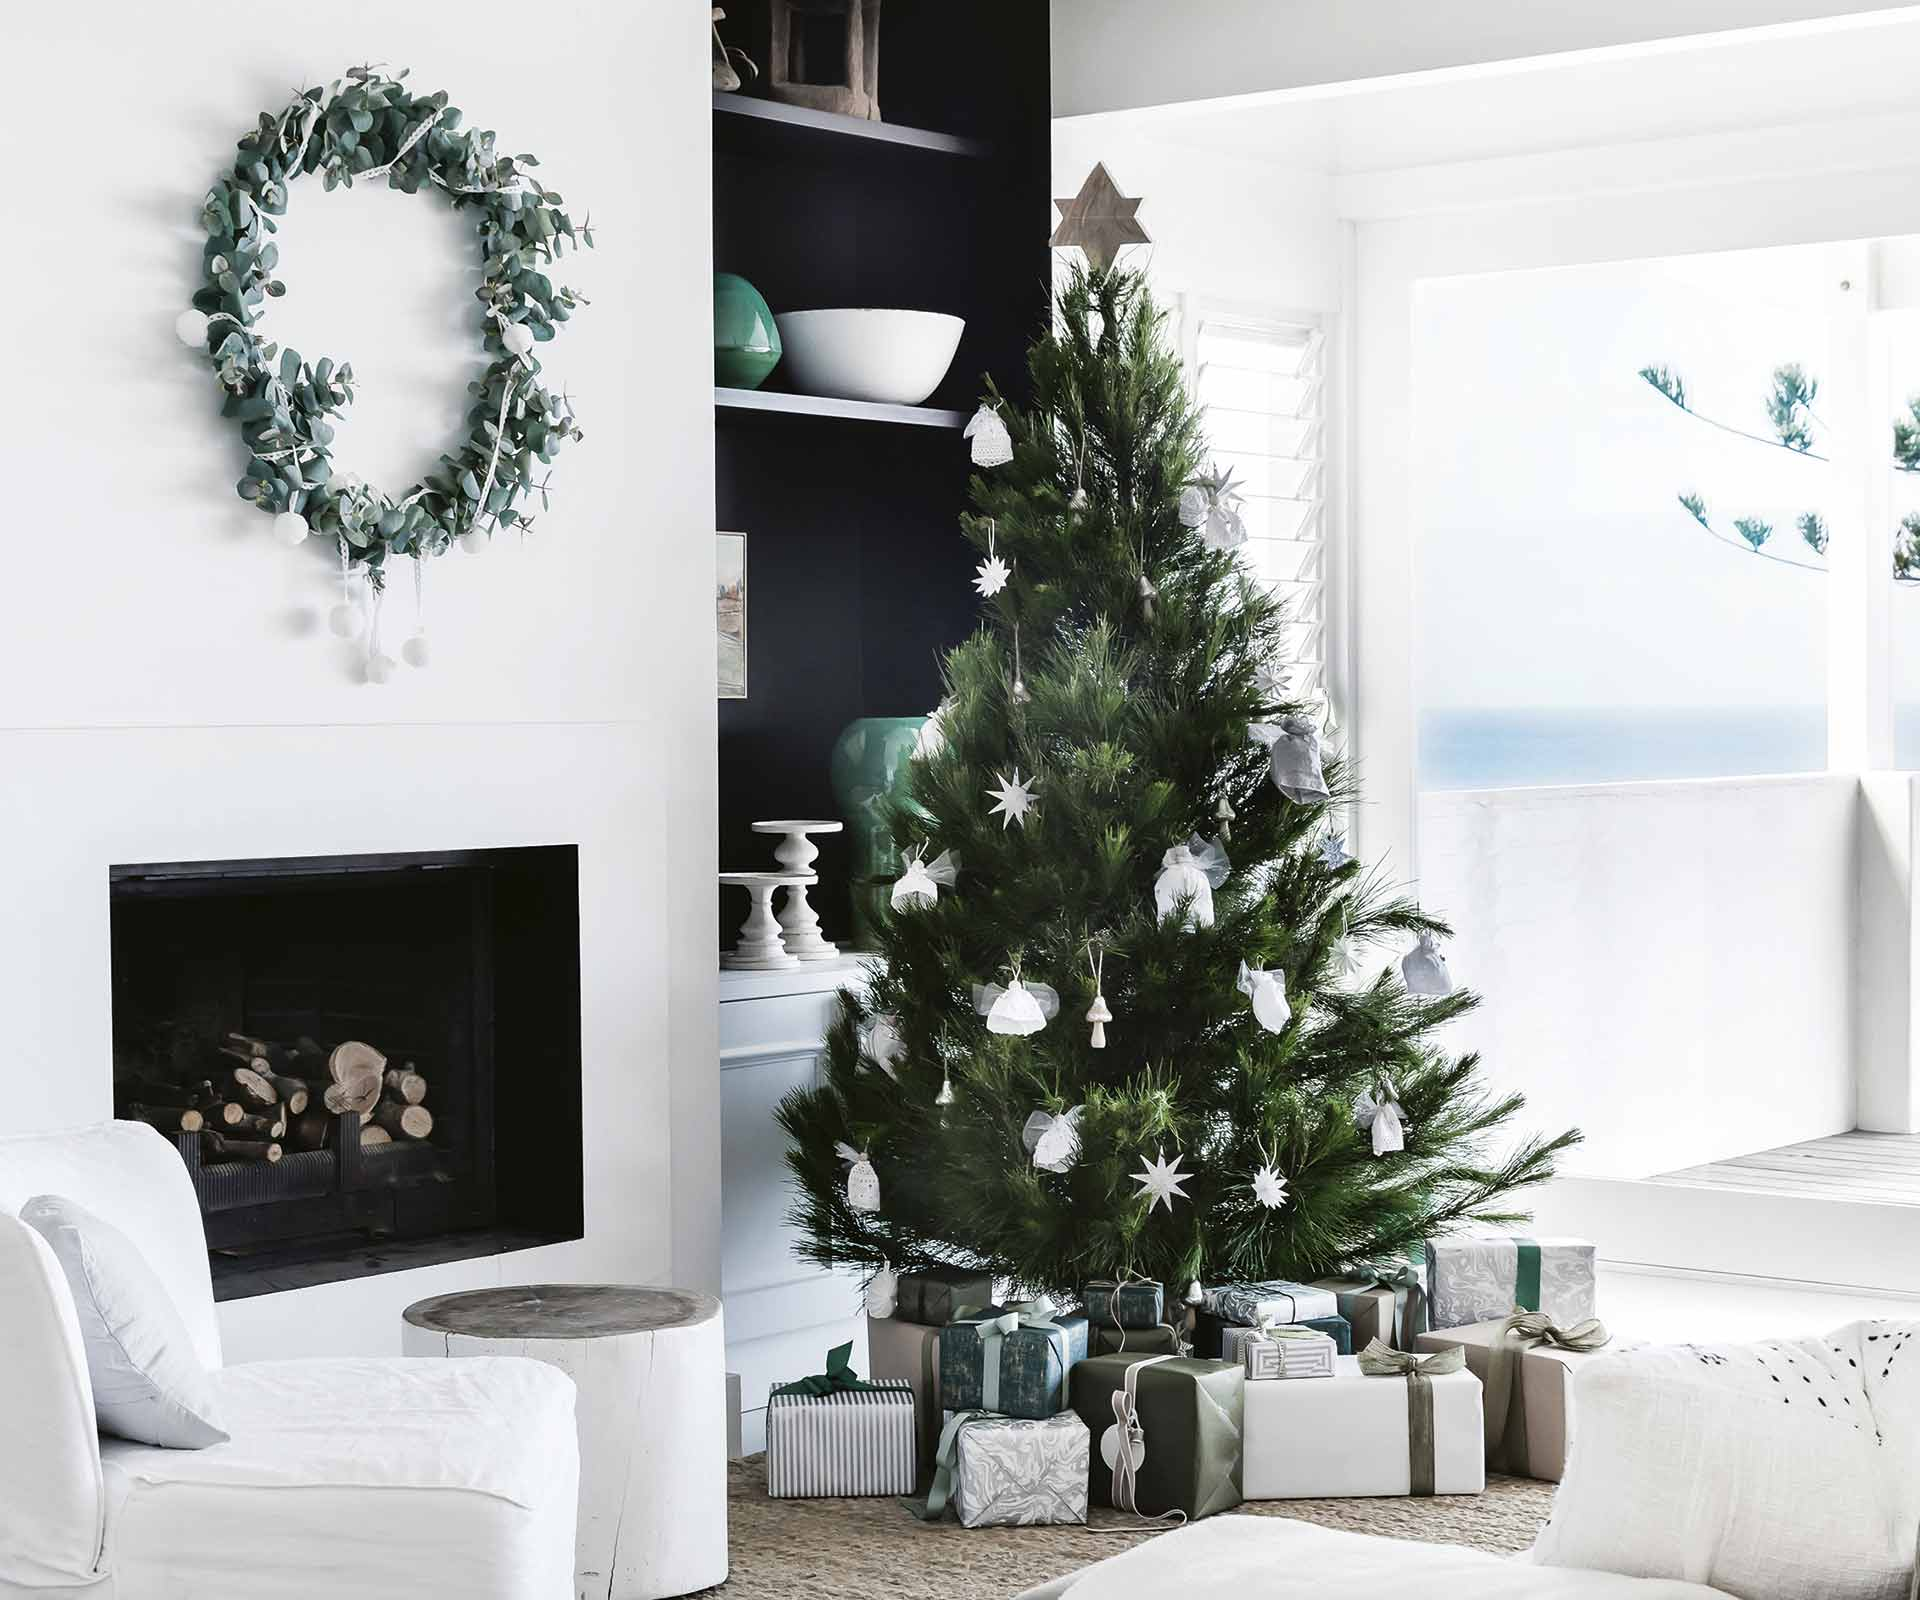 4 easy Christmas decor tips to help you deck your halls in style